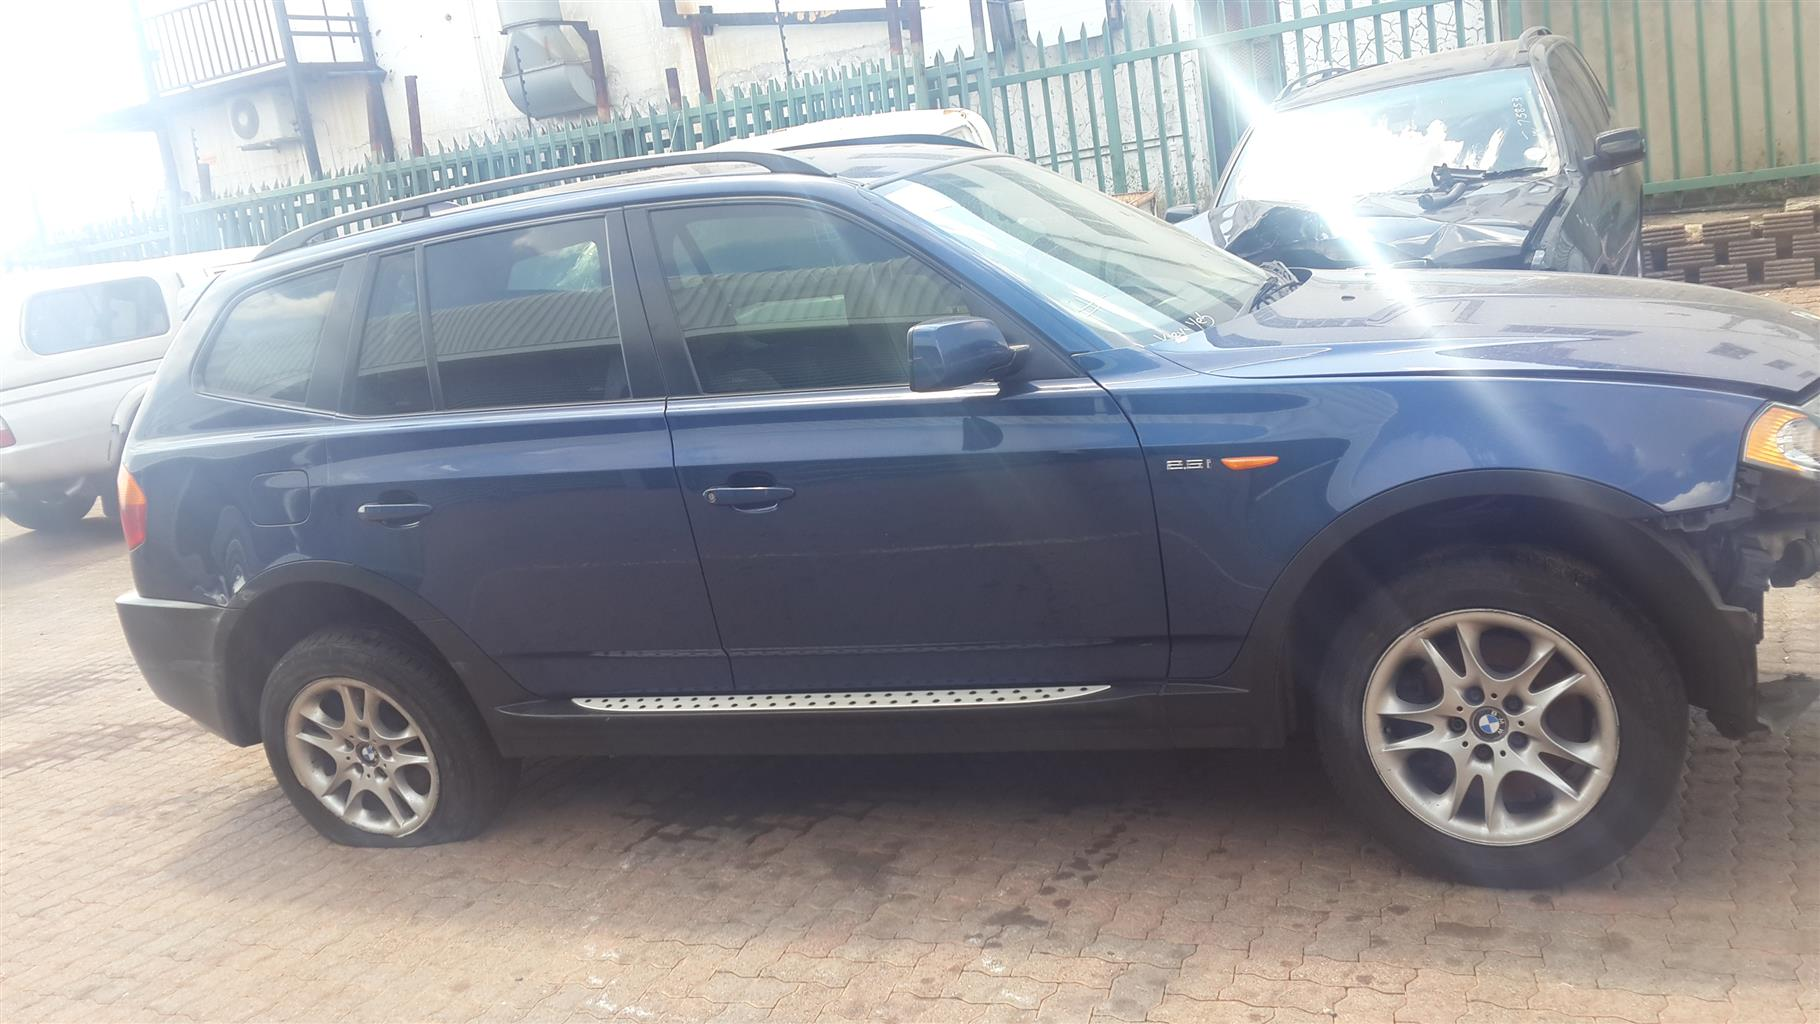 BMW X3 SPARES FOR SALE 2.5